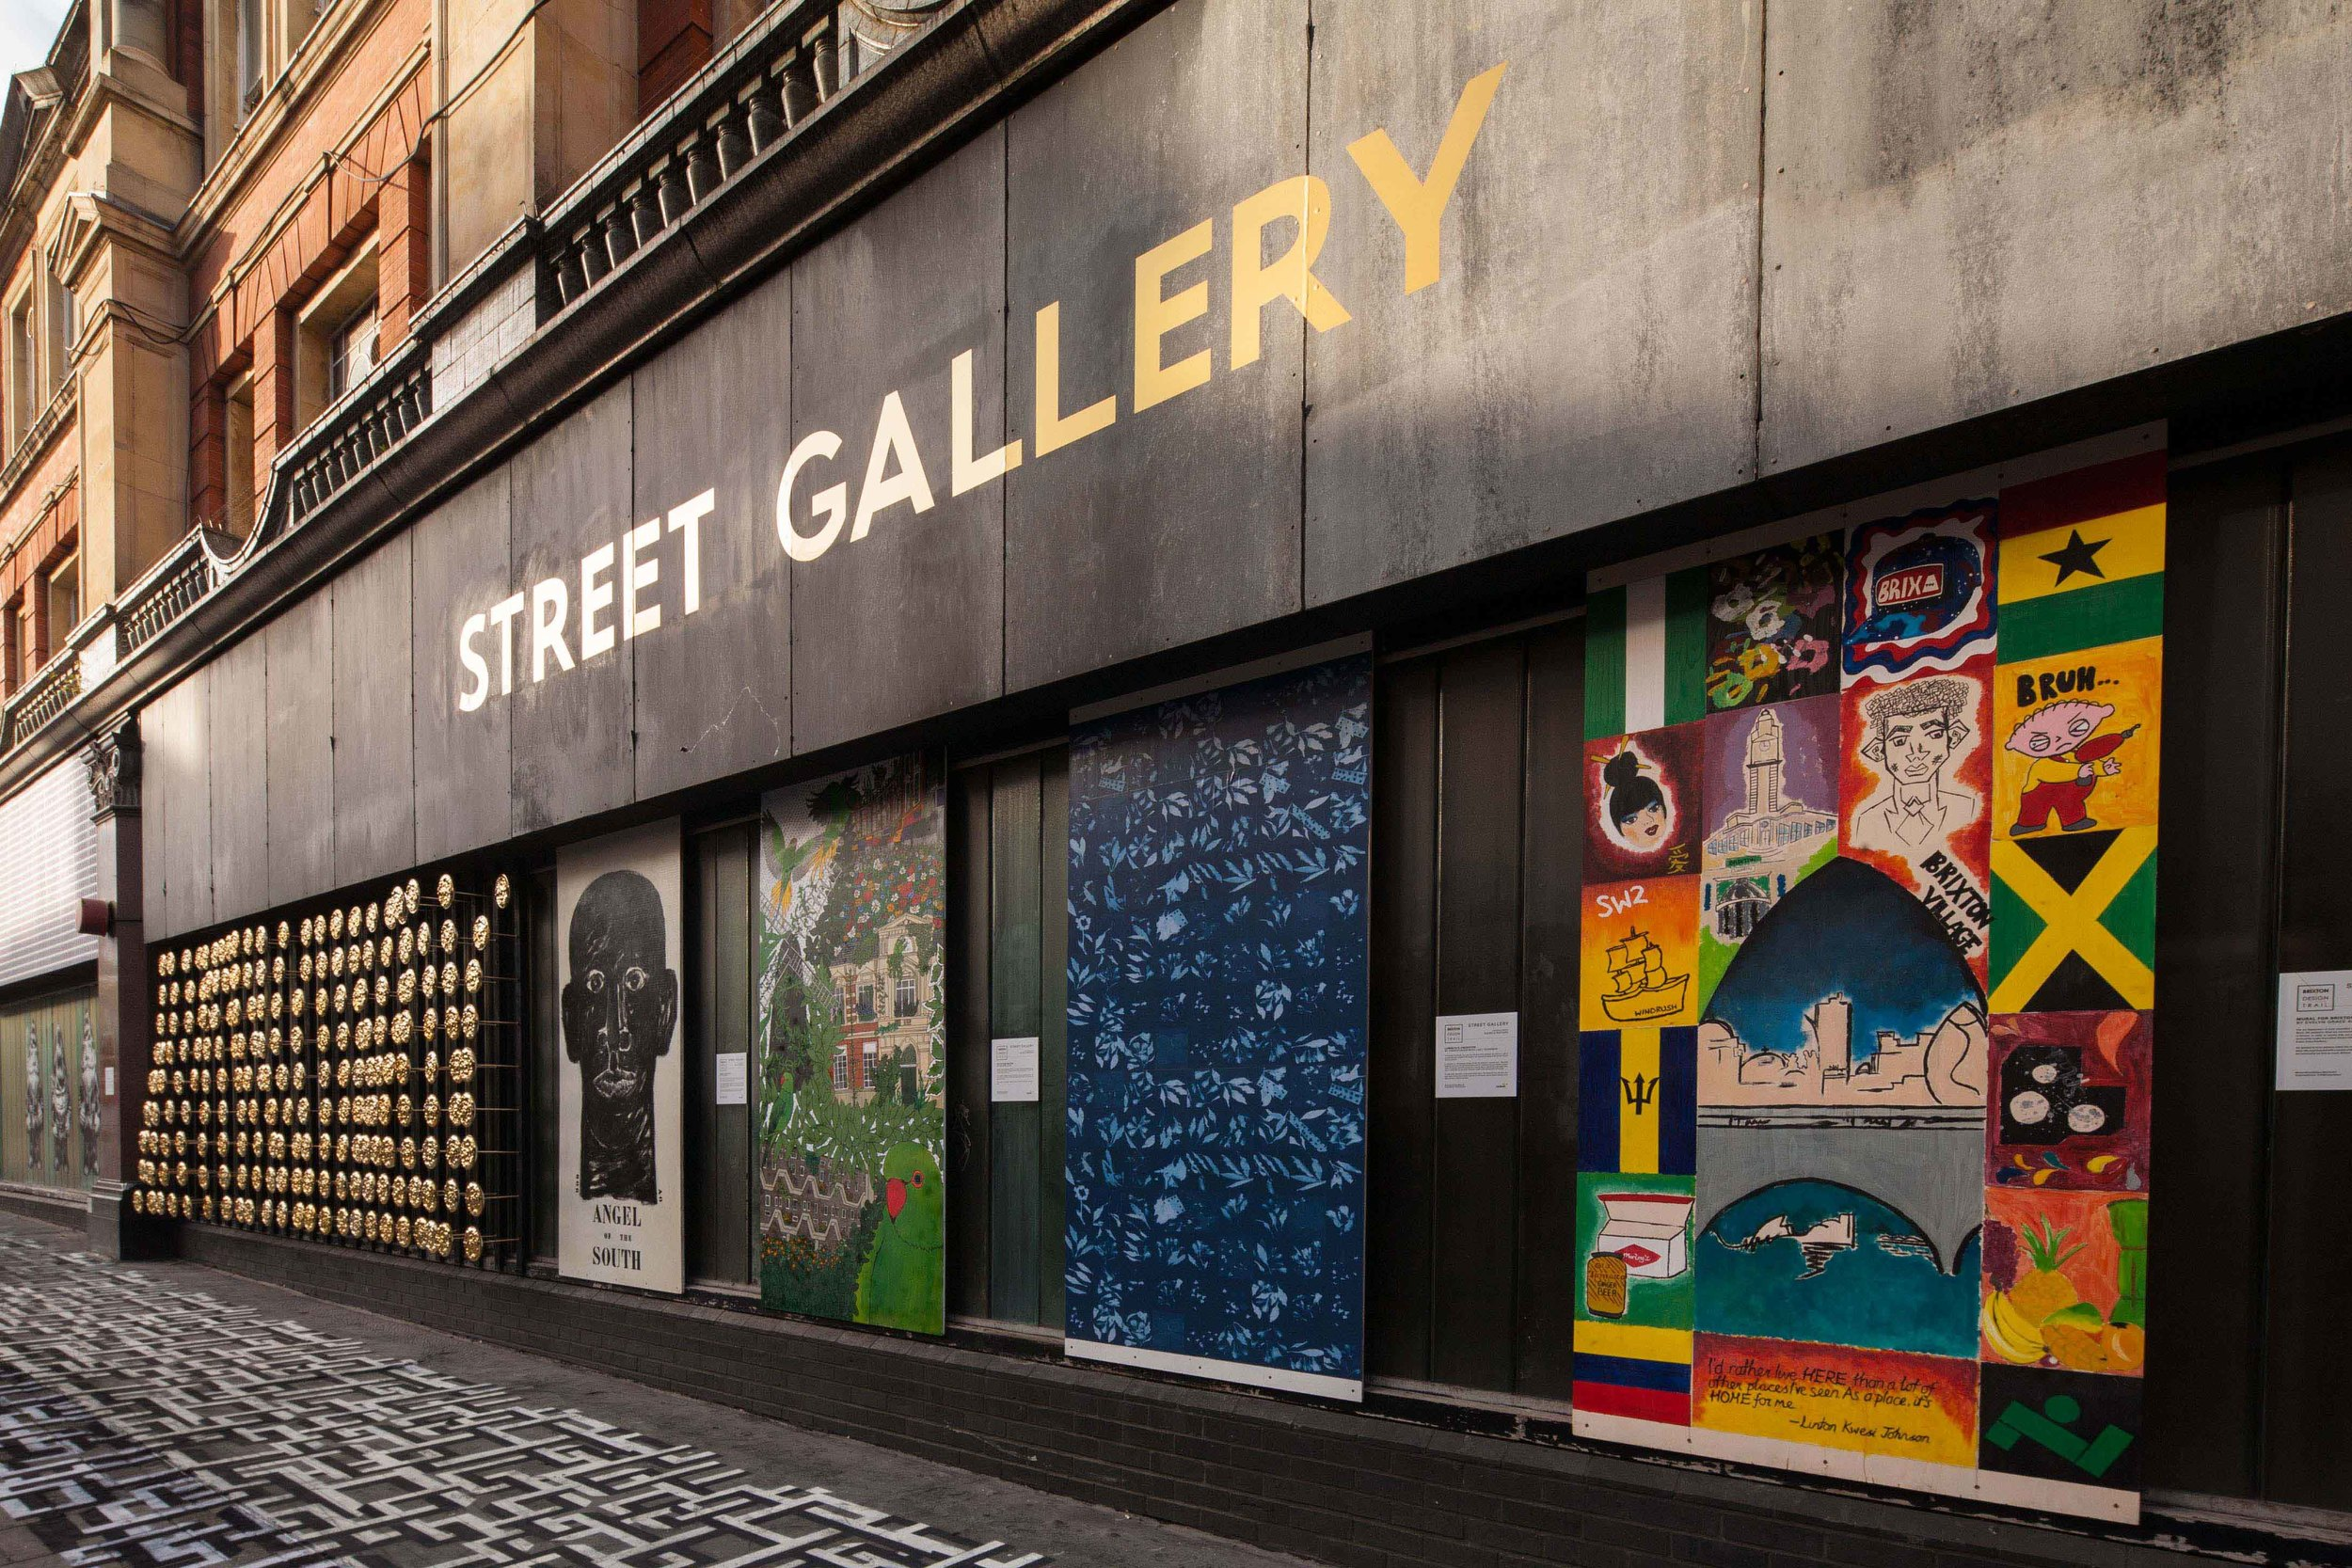 Brixton Street Gallery_Squire and Partners_05.jpg